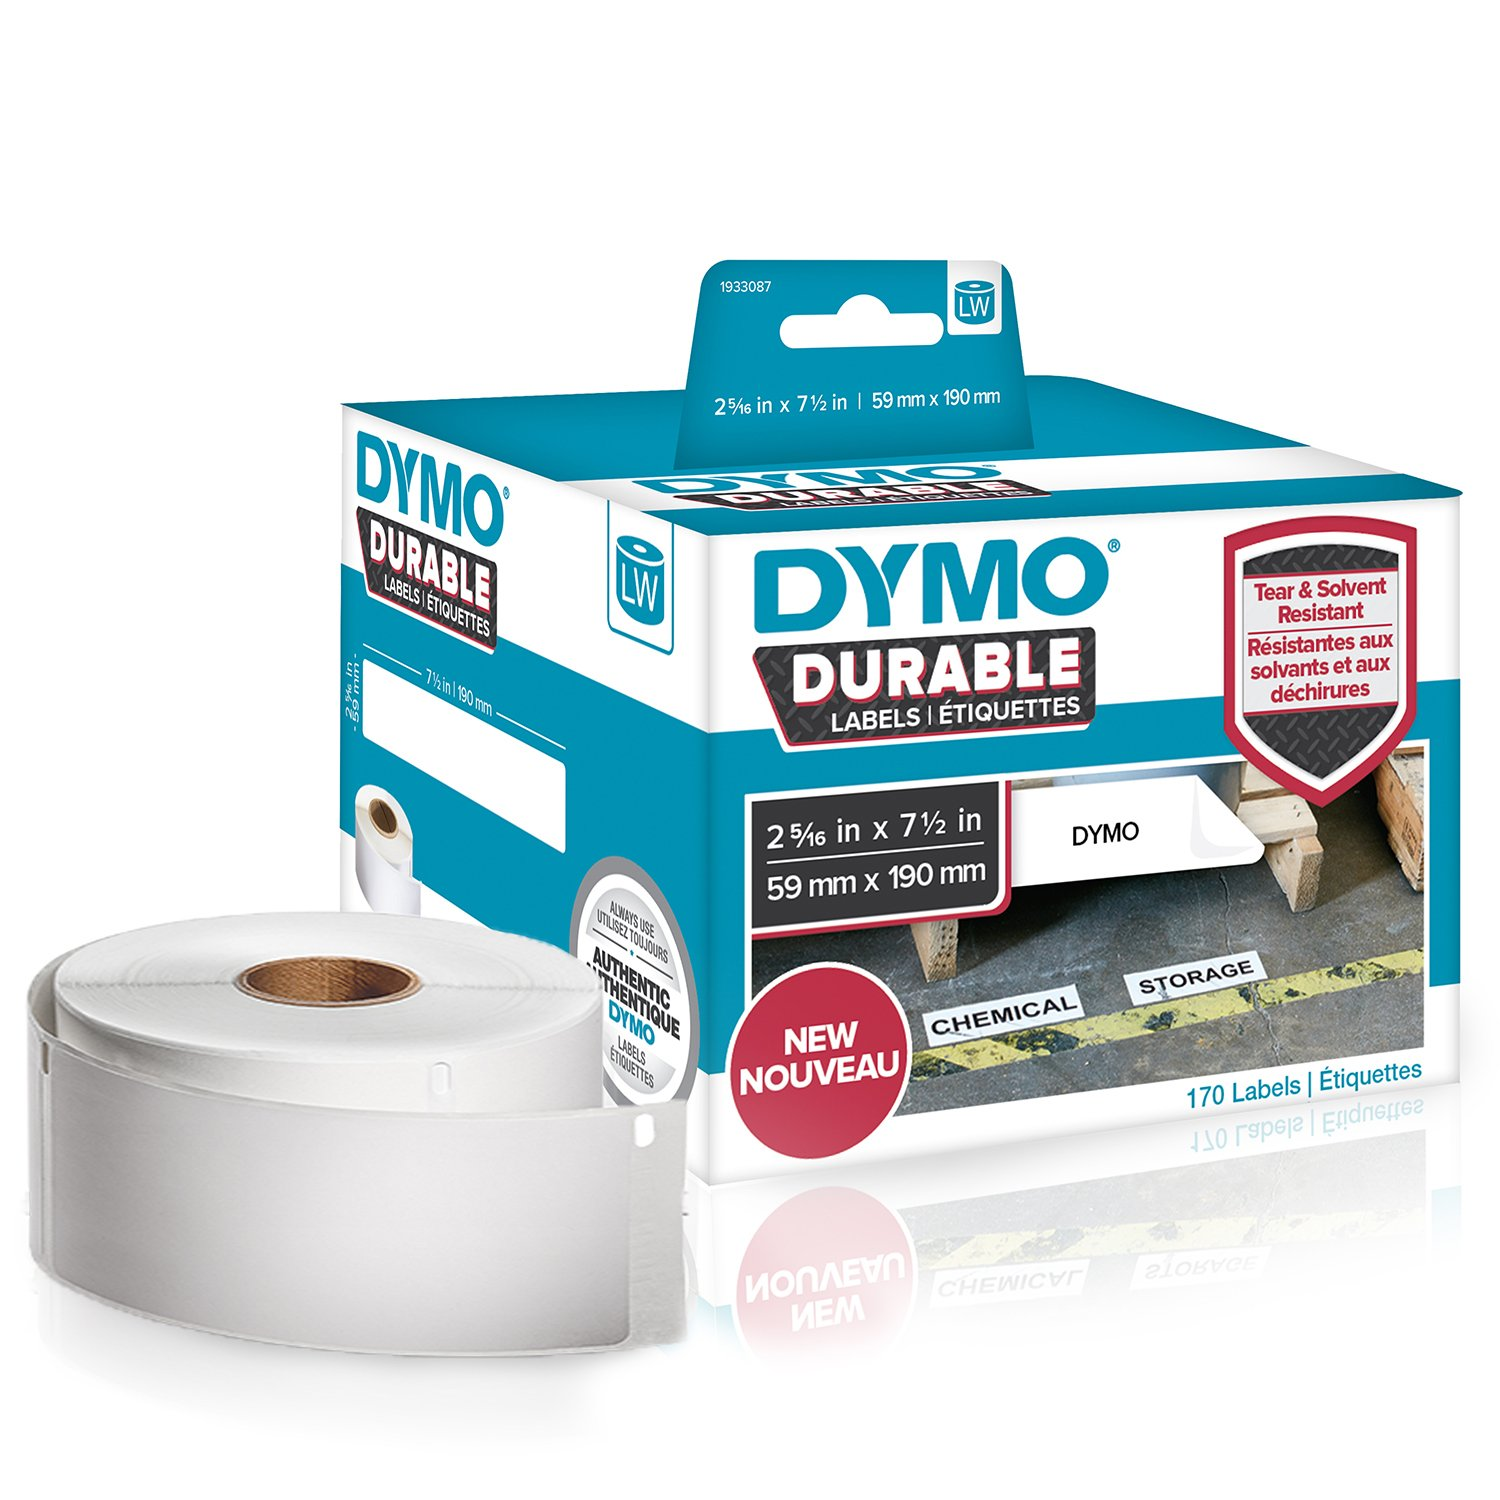 """DYMO LW Durable Industrial Labels for LabelWriter Label Printers, White Poly, 2-5/16"""" x 7-1/2"""", Roll of 170 (1933087)"""